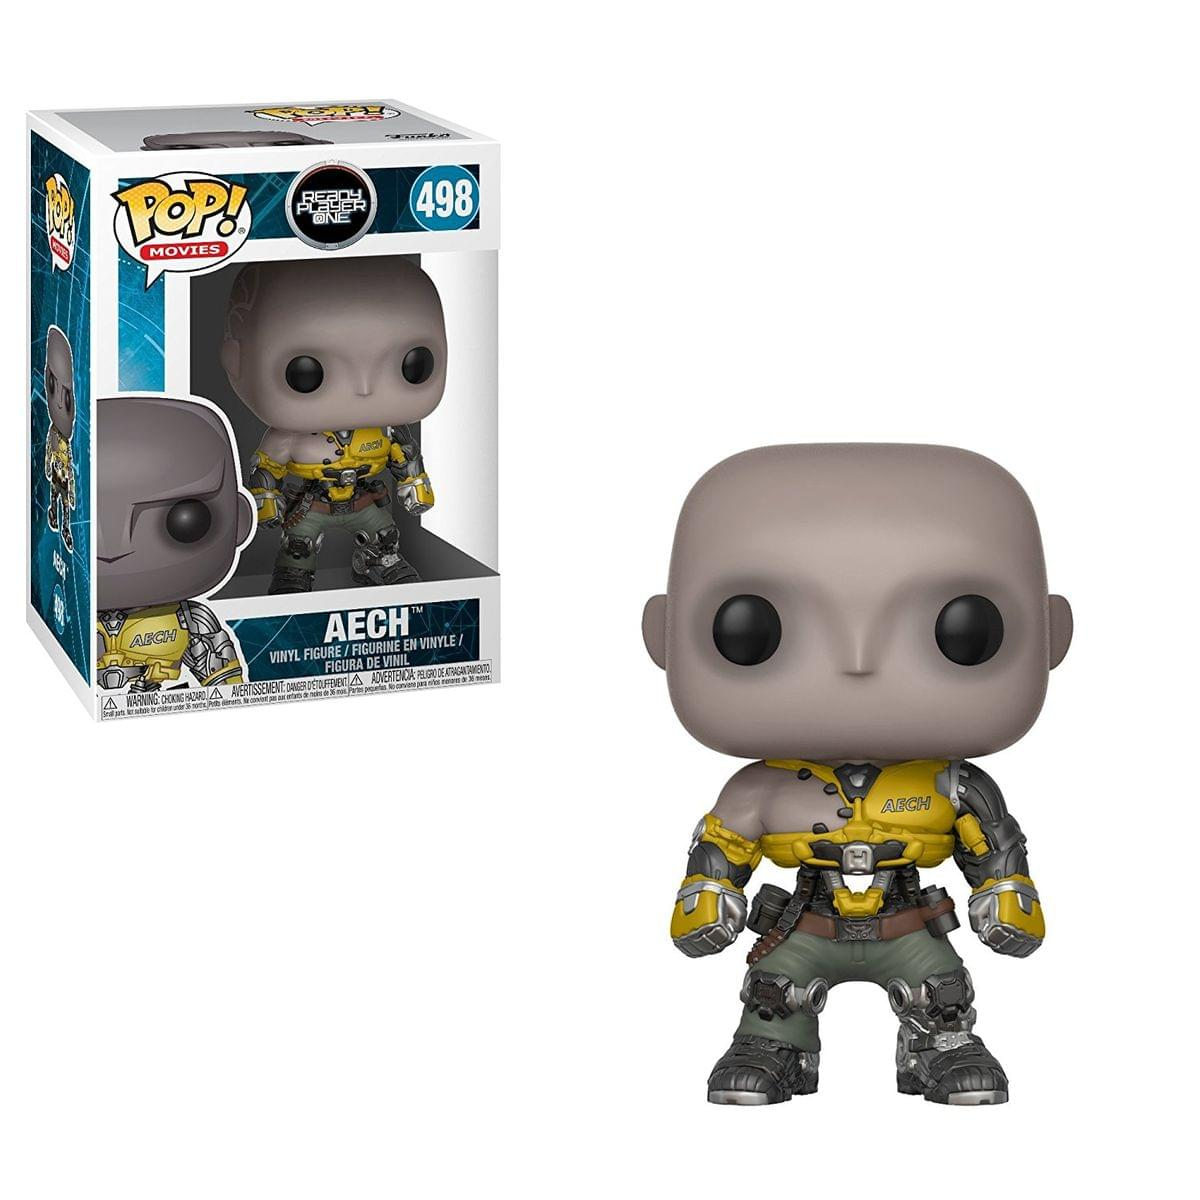 Ready Player One Funko POP Vinyl Figure: Aech